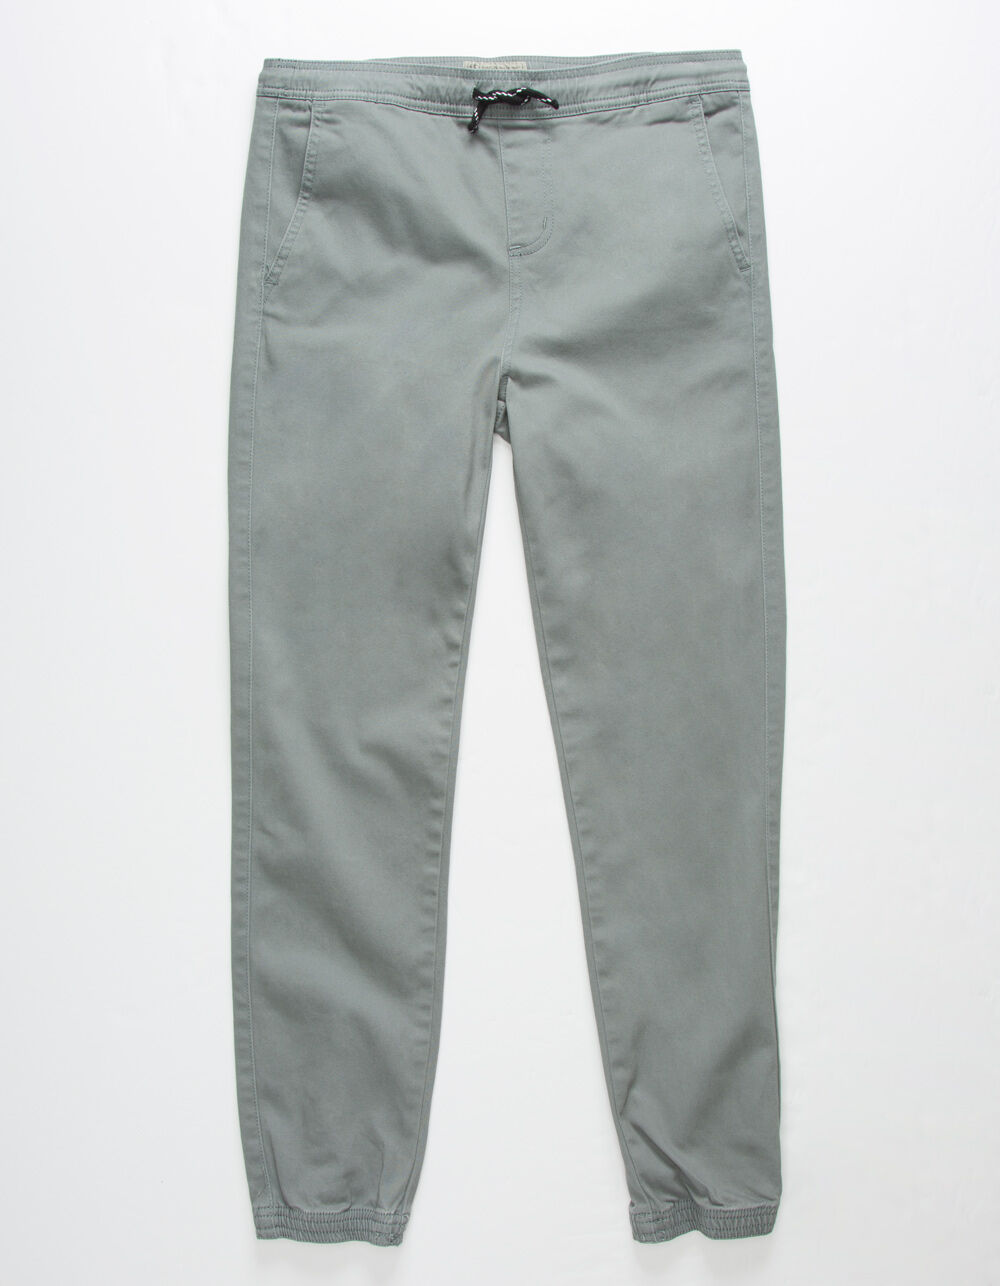 CHARLES AND A HALF Classic Slate Blue Boys Jogger Pants